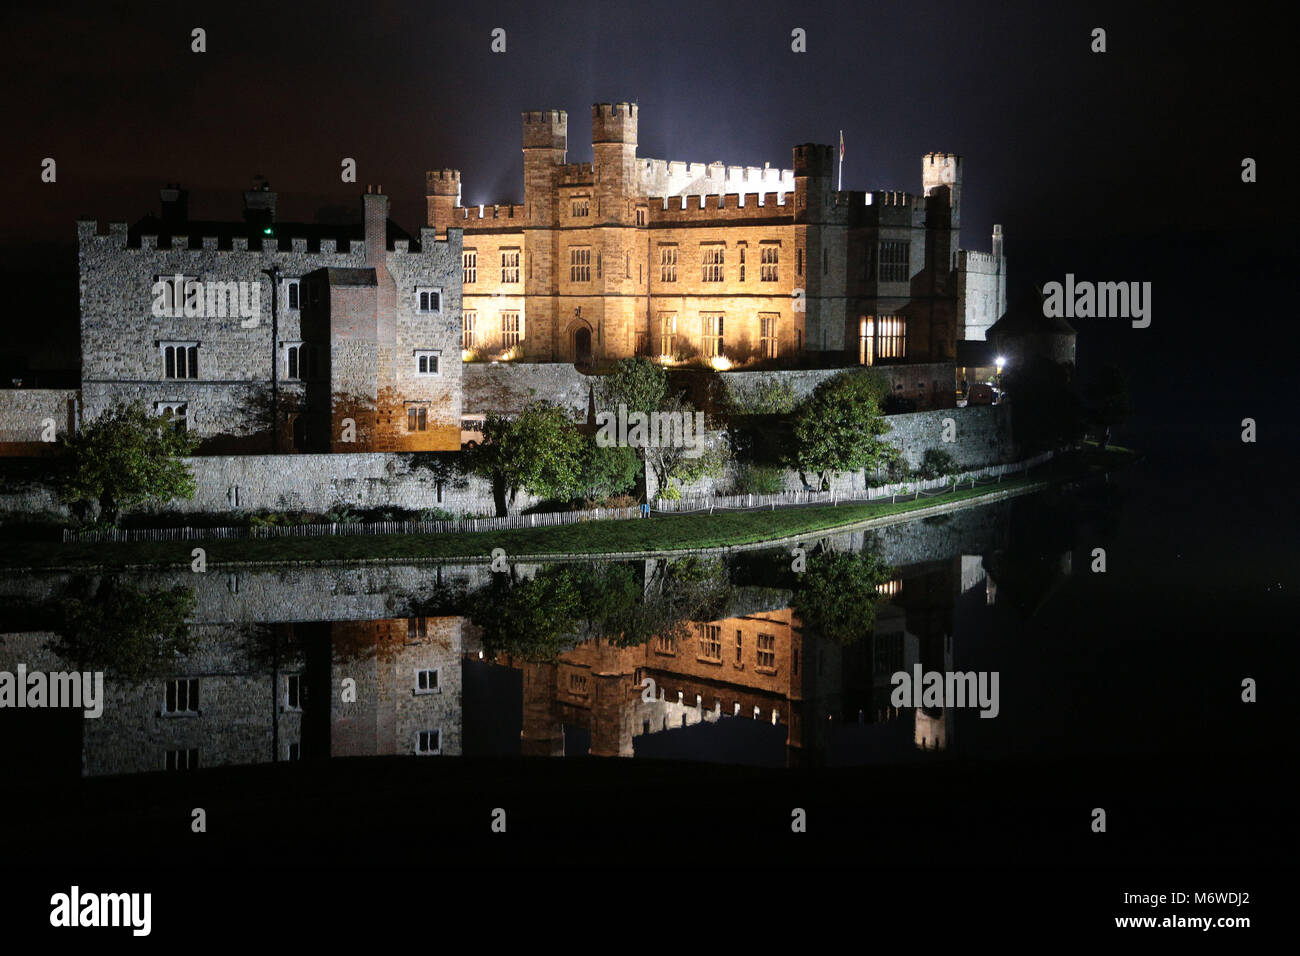 Leeds Caslte Maidstone Kent at night with reflextions in the moat - Stock Image